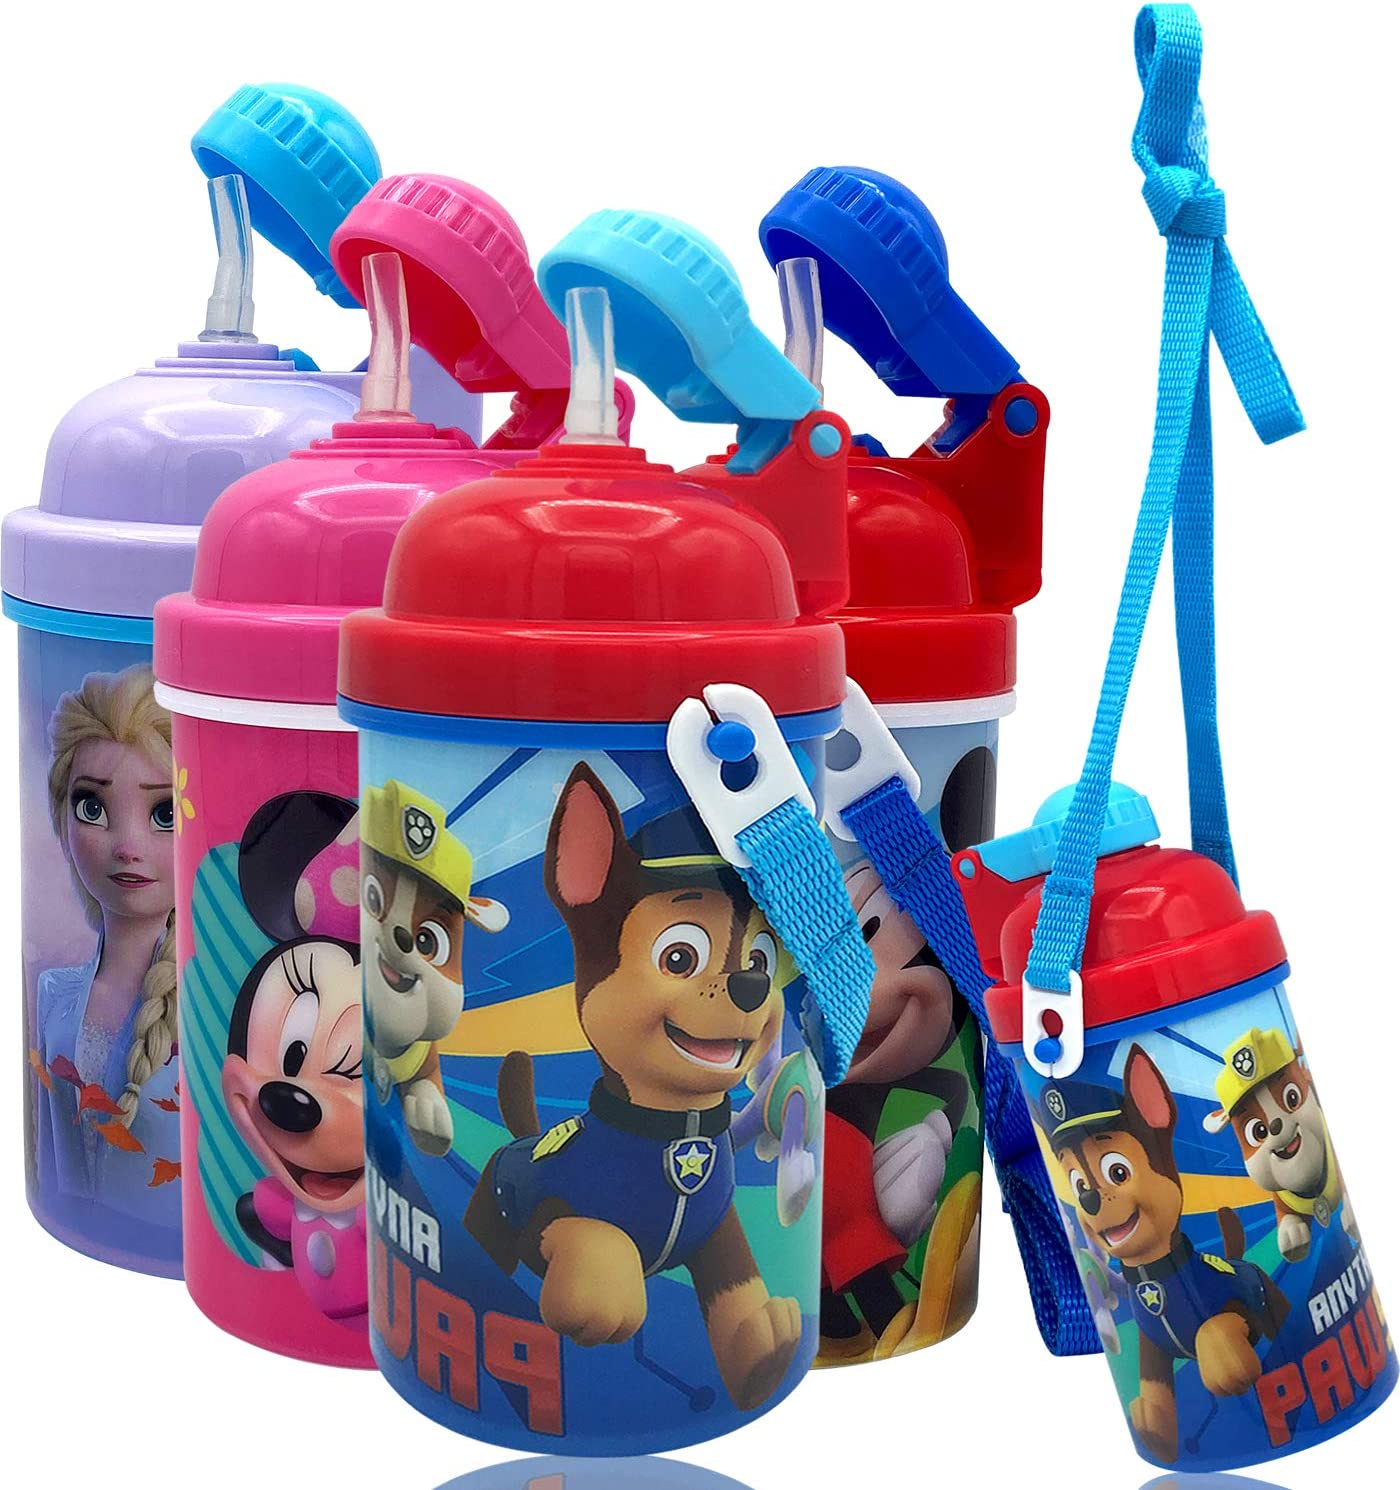 Disney Paw Patrol Carrying Strap One Touch Water Bottles with Reusable Built in Straw - Safe Approved BPA free, Easy to Clean, Perfect Gifts for Kids Girls Boys, Goodies Home Travel